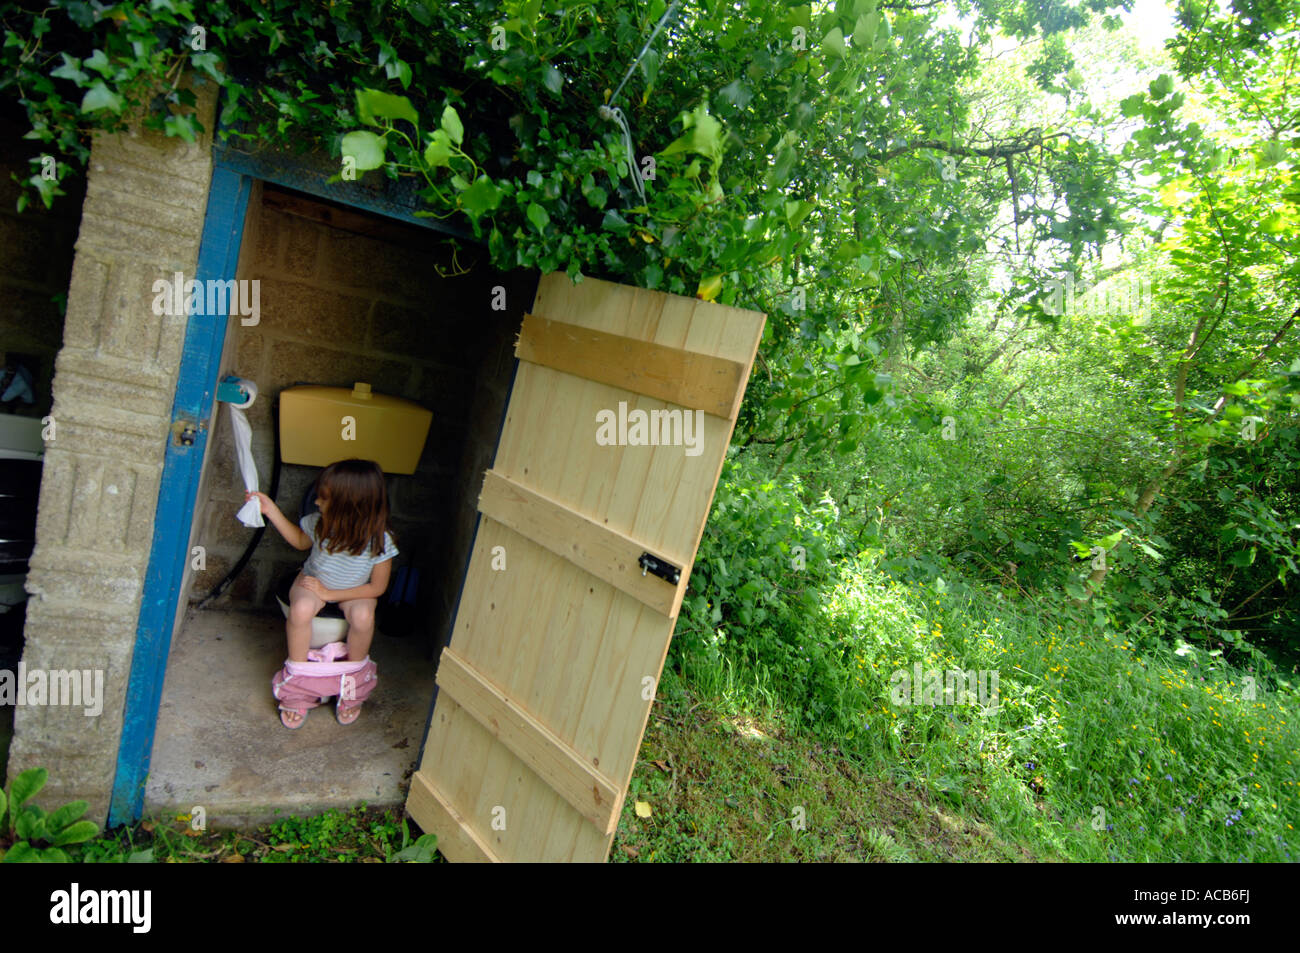 How To A To Use The Bathroom Outside Toilet Outside Toilet Using An Outdoor Toilet Stock